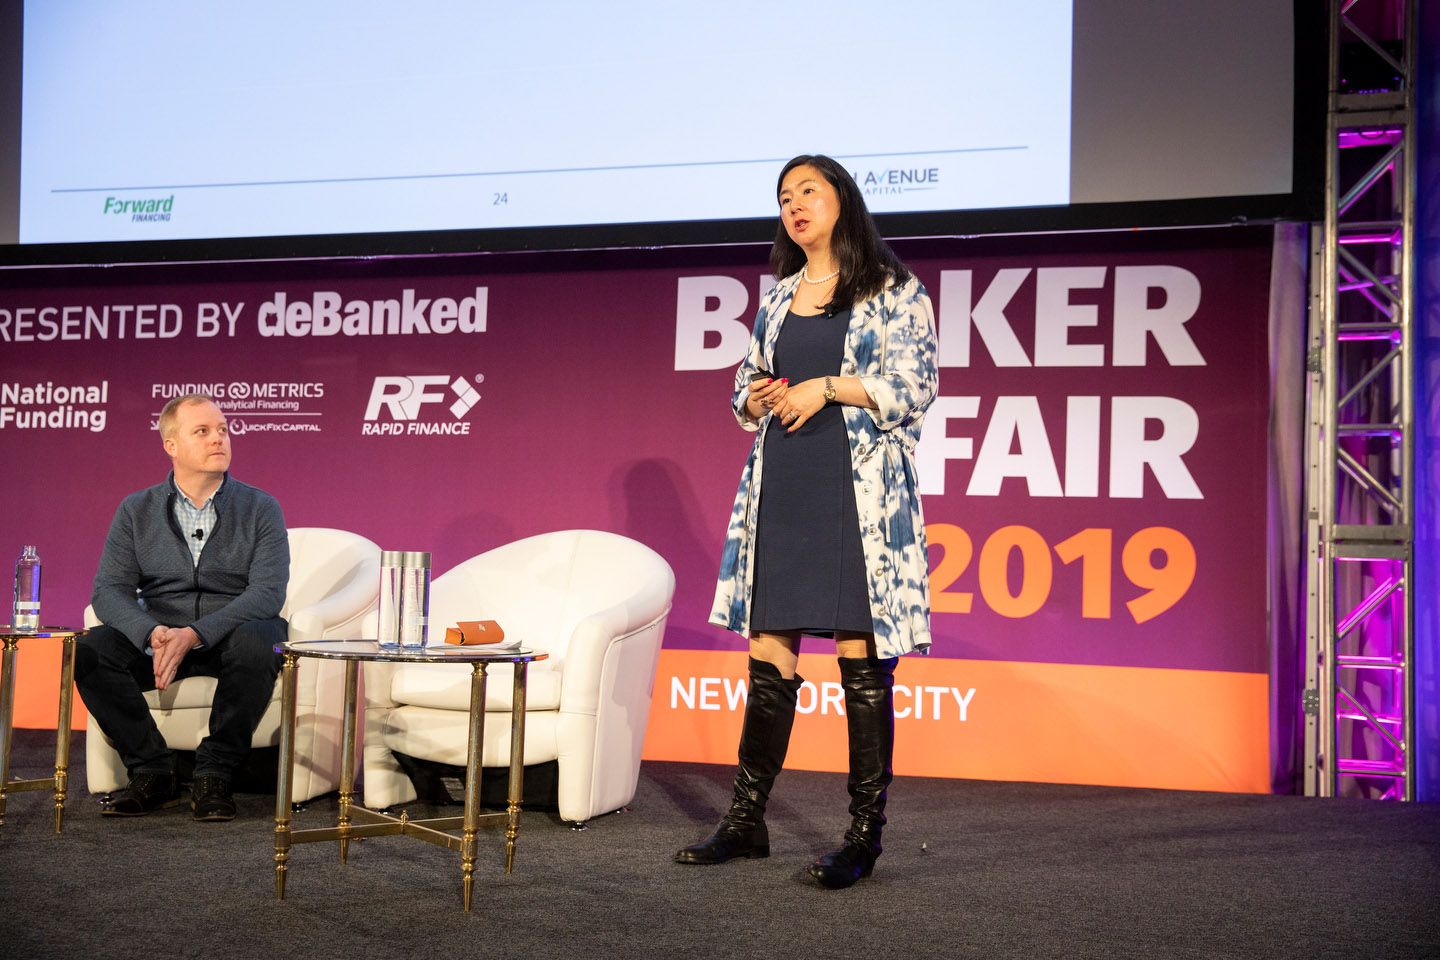 Broker Fair 2019 - Presented by deBanked - 266